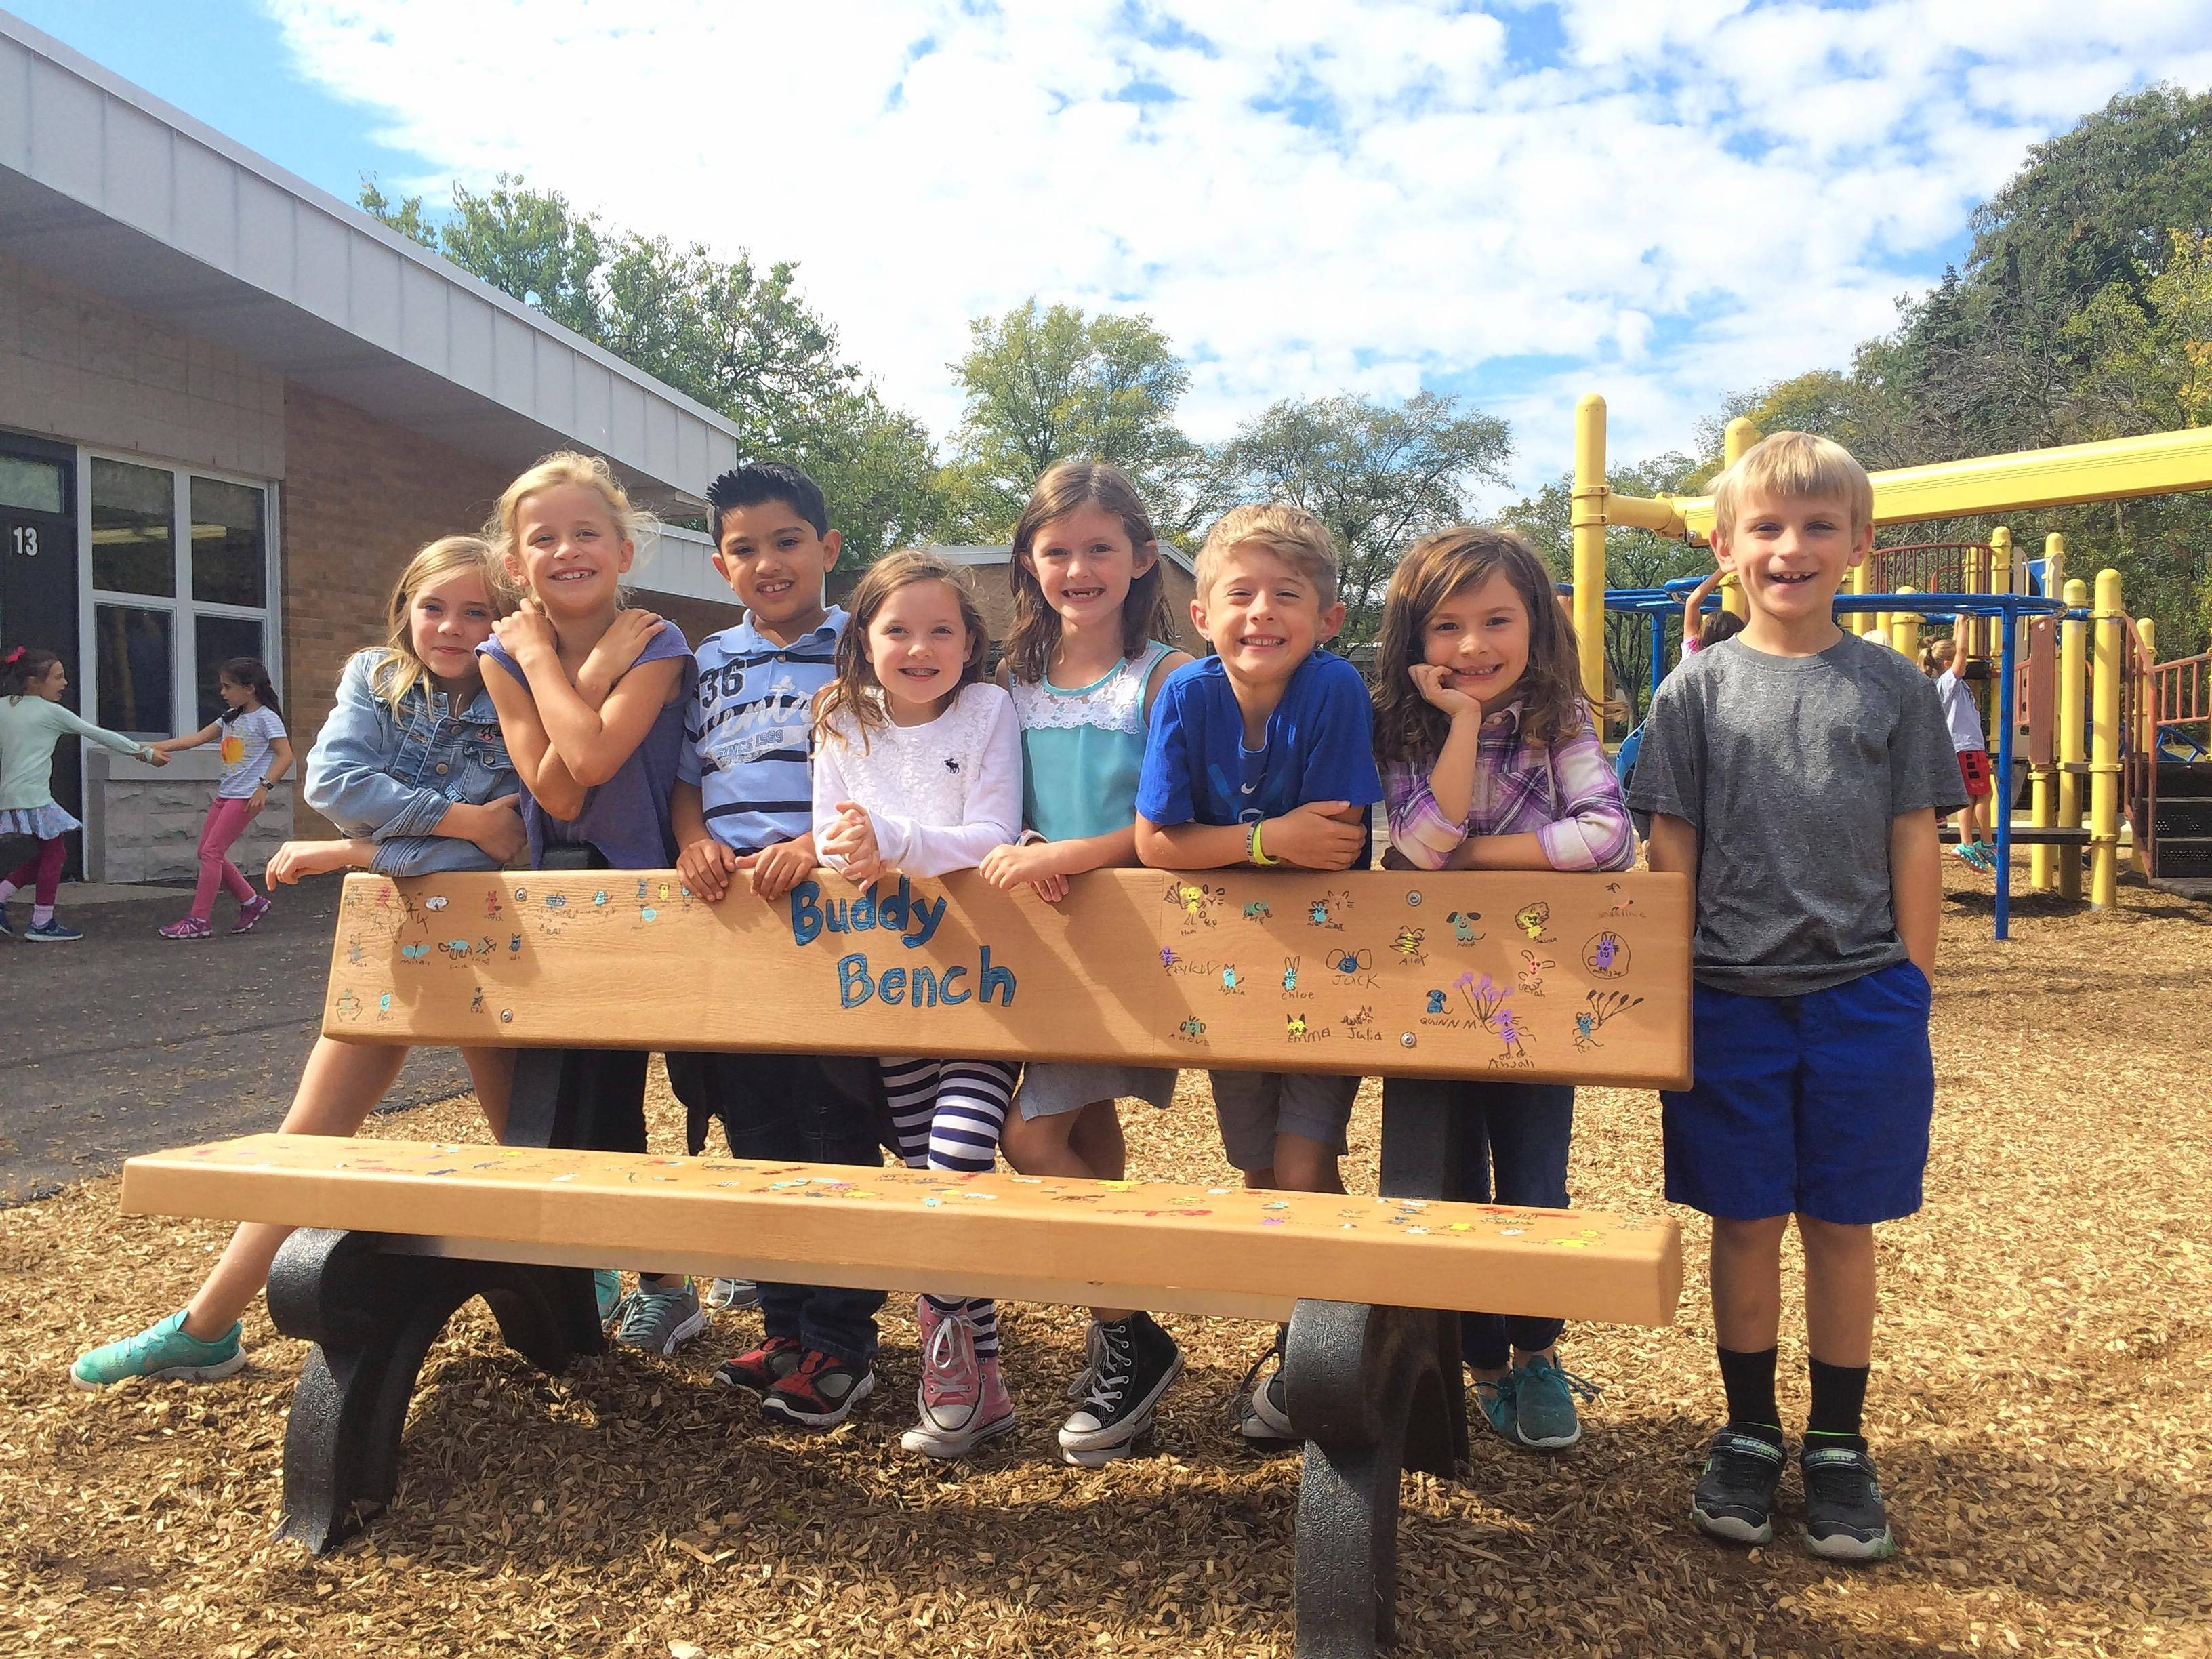 Abraham Lincoln School students Olivia Davis, Chloe Todd, Dominic Moyano, Evelyn Dieter, Quinn Luttenton, Charlie Luttenton, Elle Miller and Cooper Ksiazek helped raise funds to install a buddy bench at the campus playground. If kids are feeling lonely and sit on the bench, their peers invite them to play.